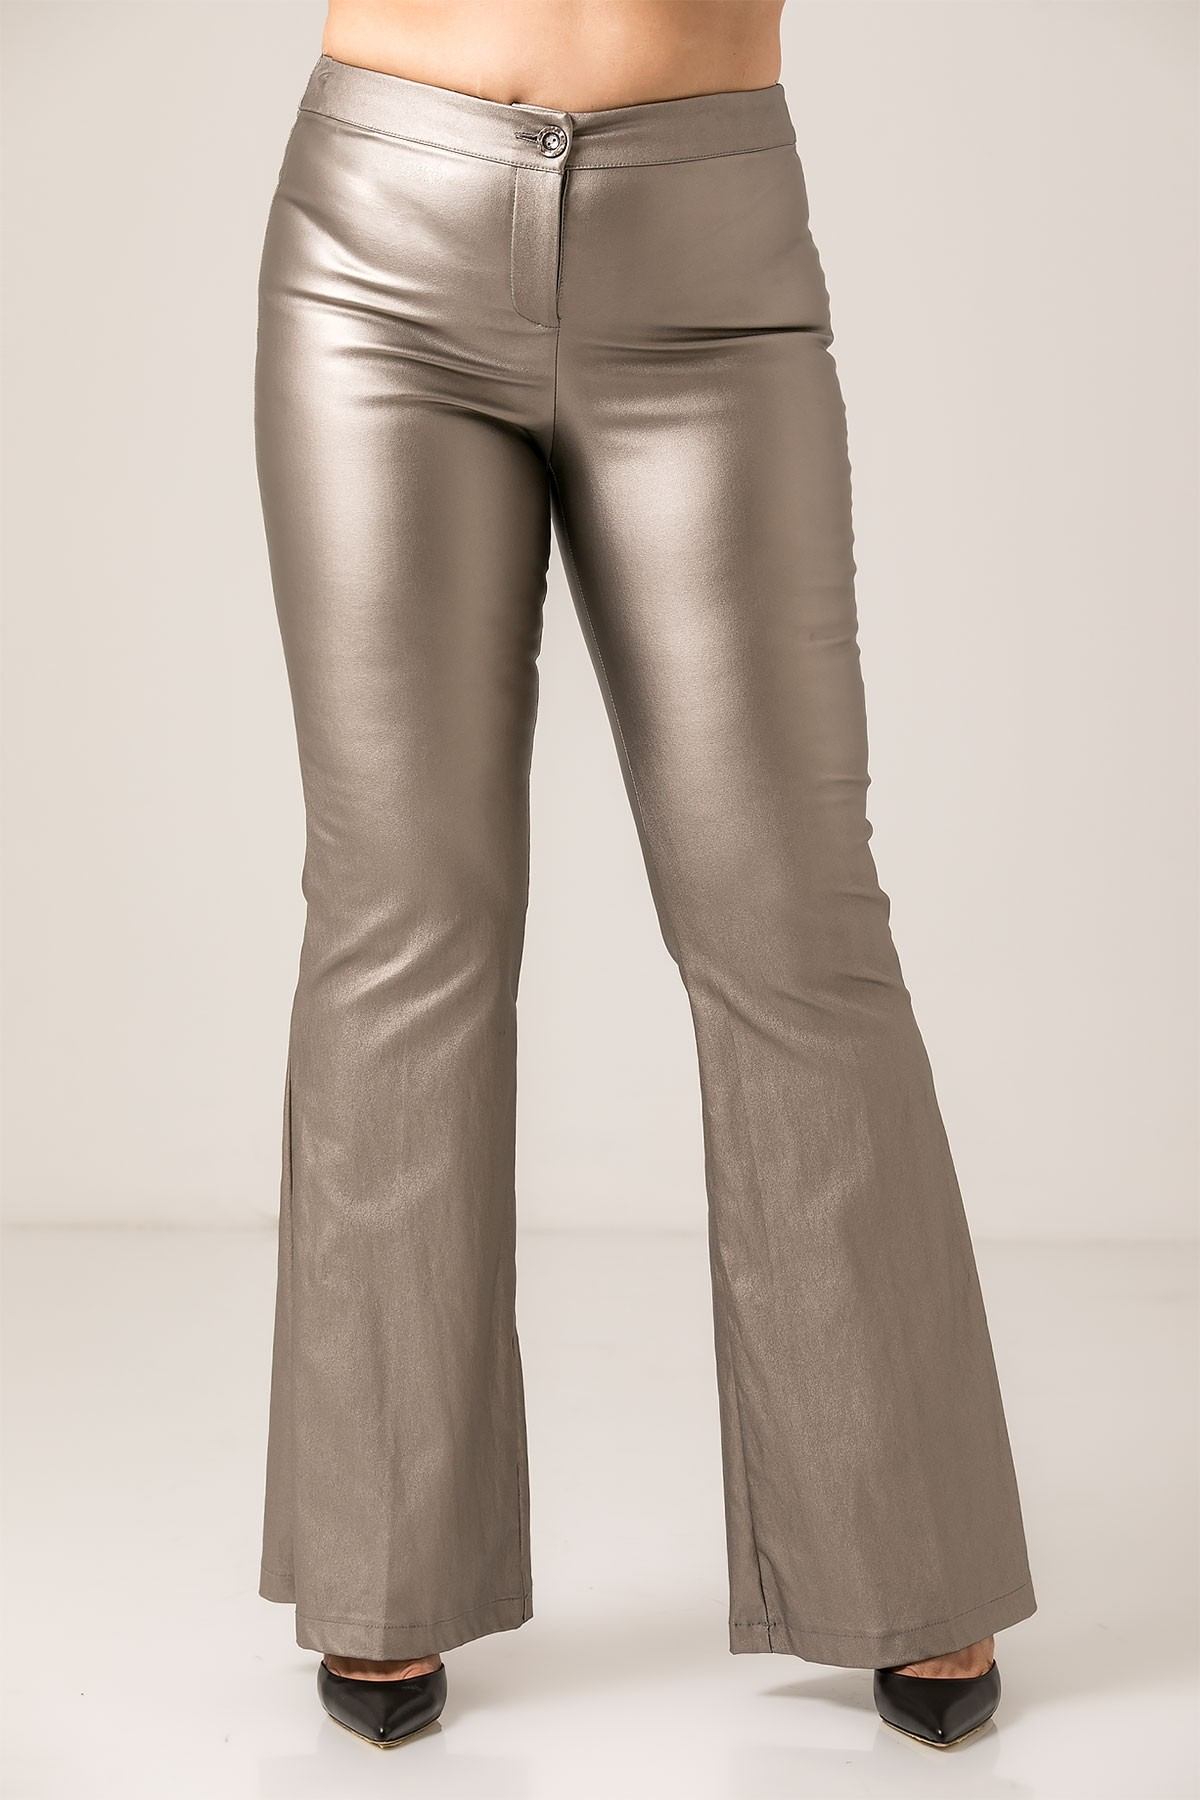 METALLIC SILVER FLARED TROUSERS